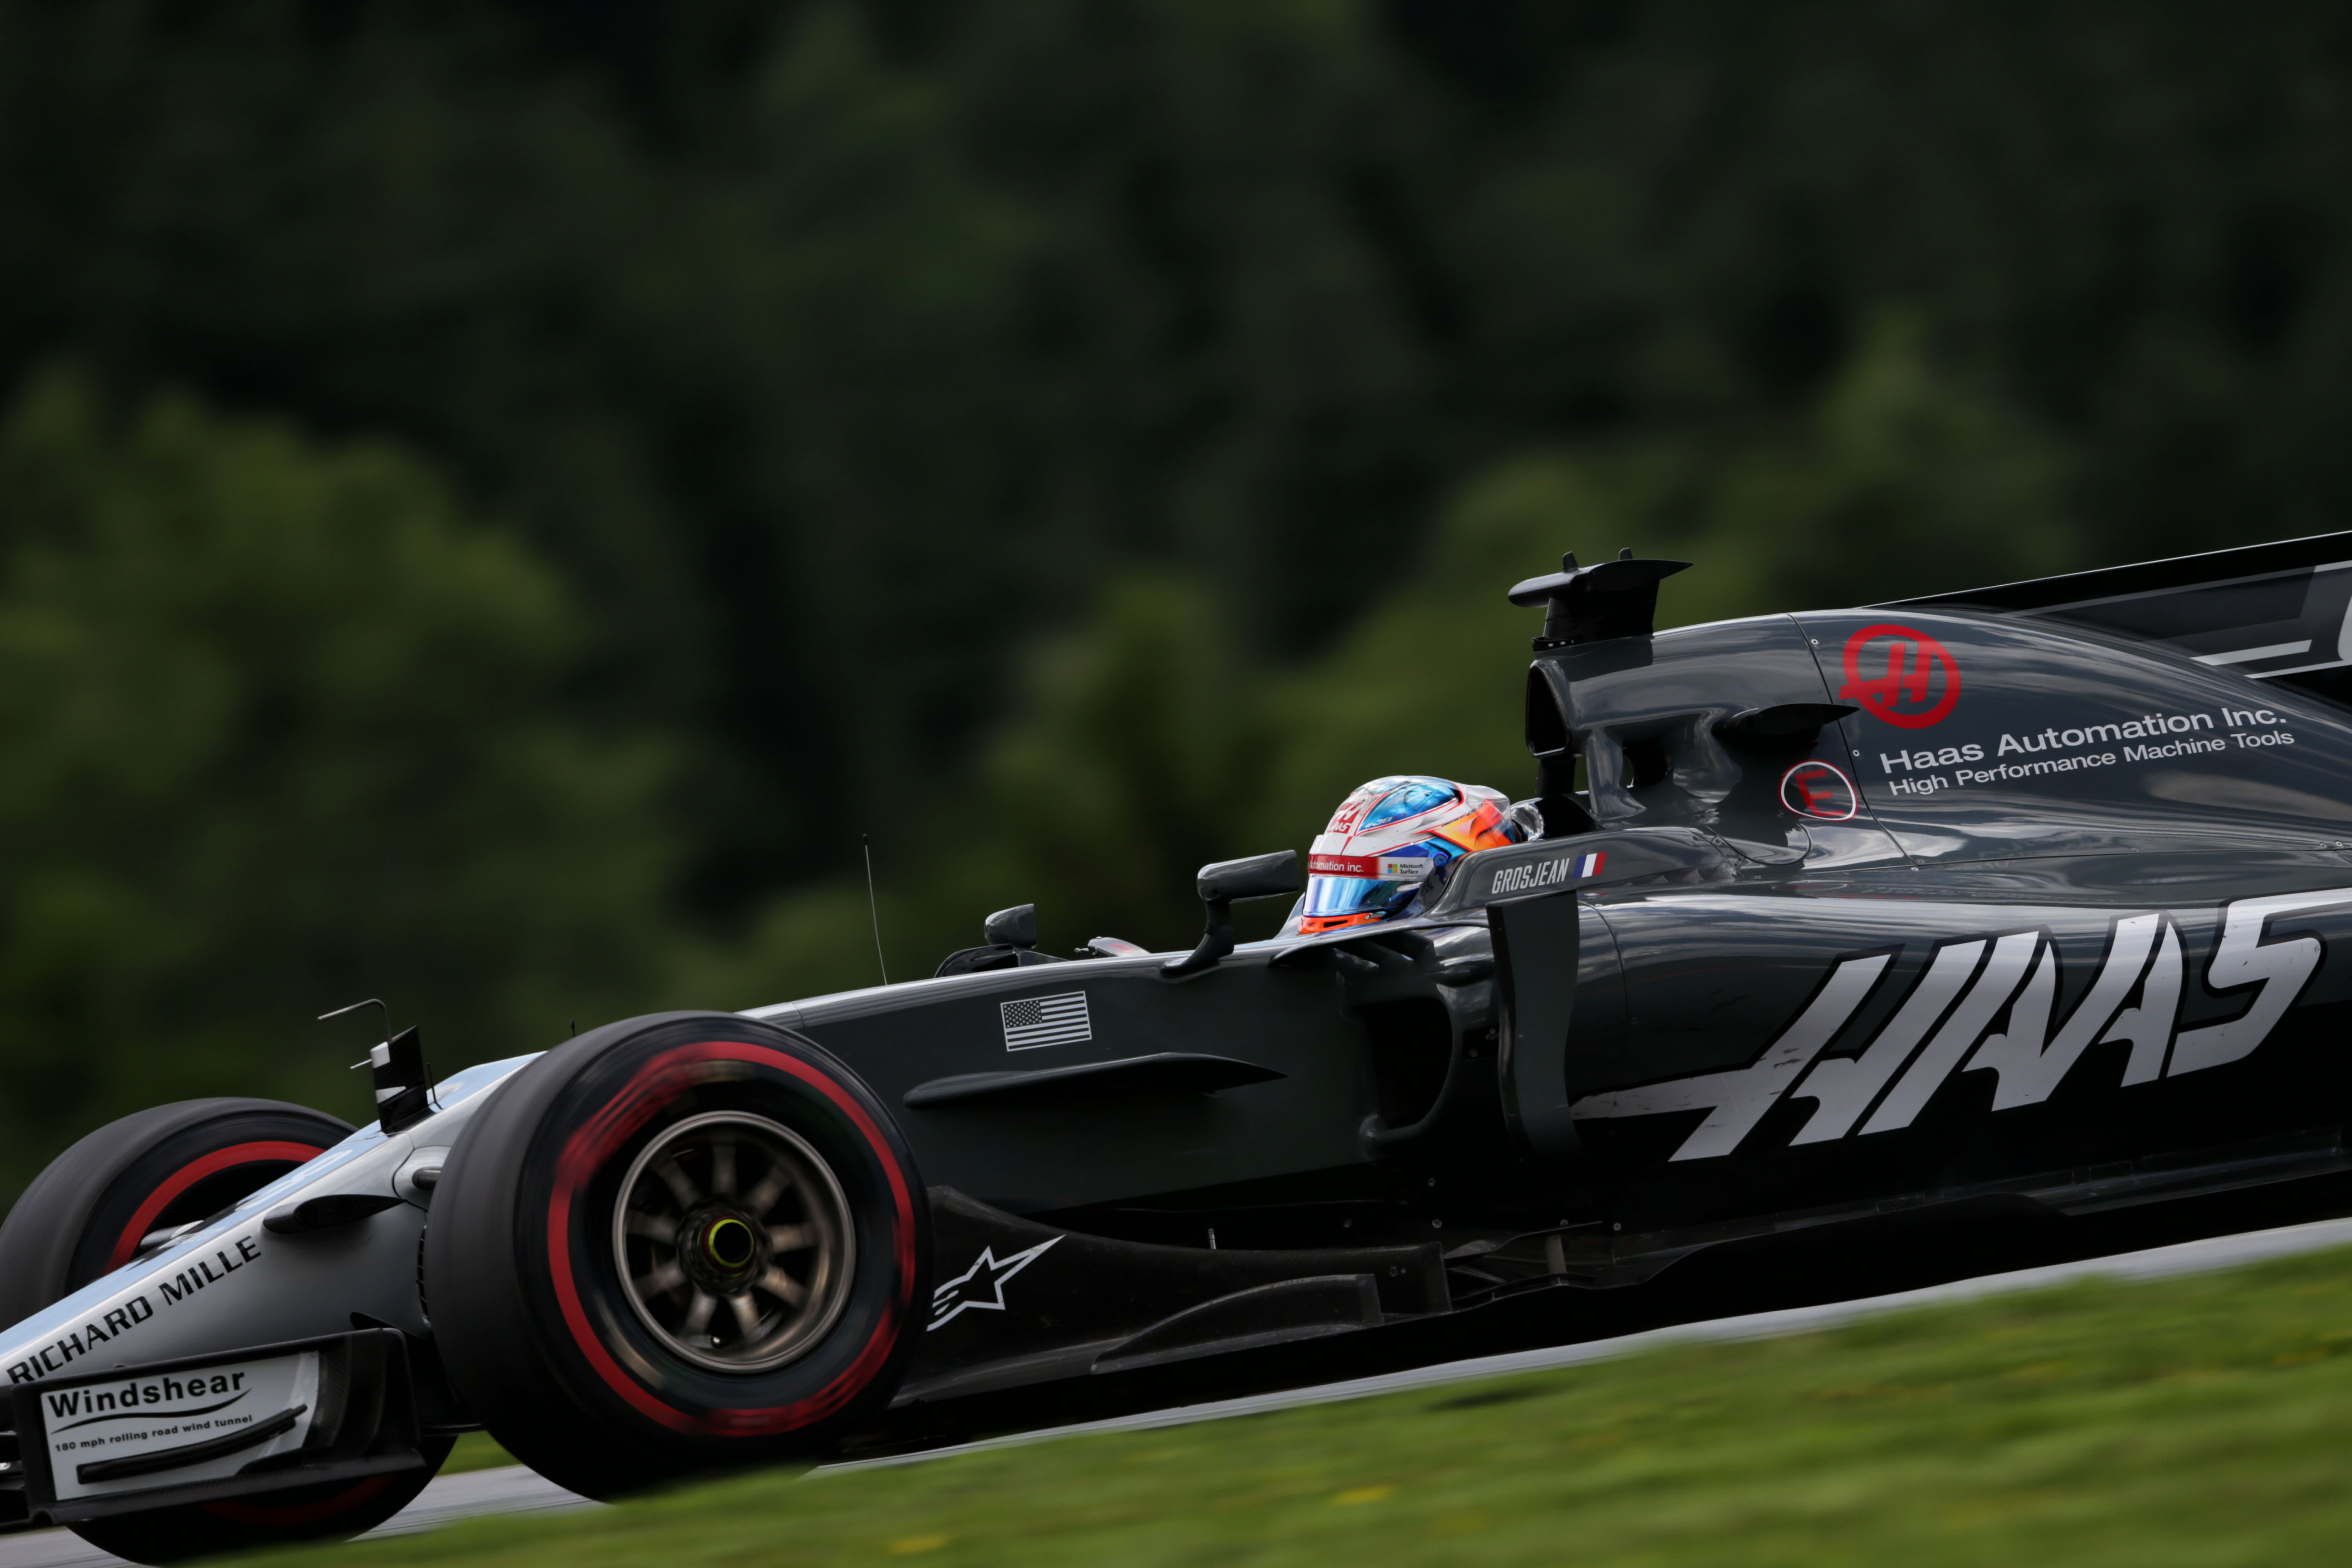 Haas F1 Team Retains Kevin Magnussen And Romain Grosjean For 2018 Classic And Super Cars